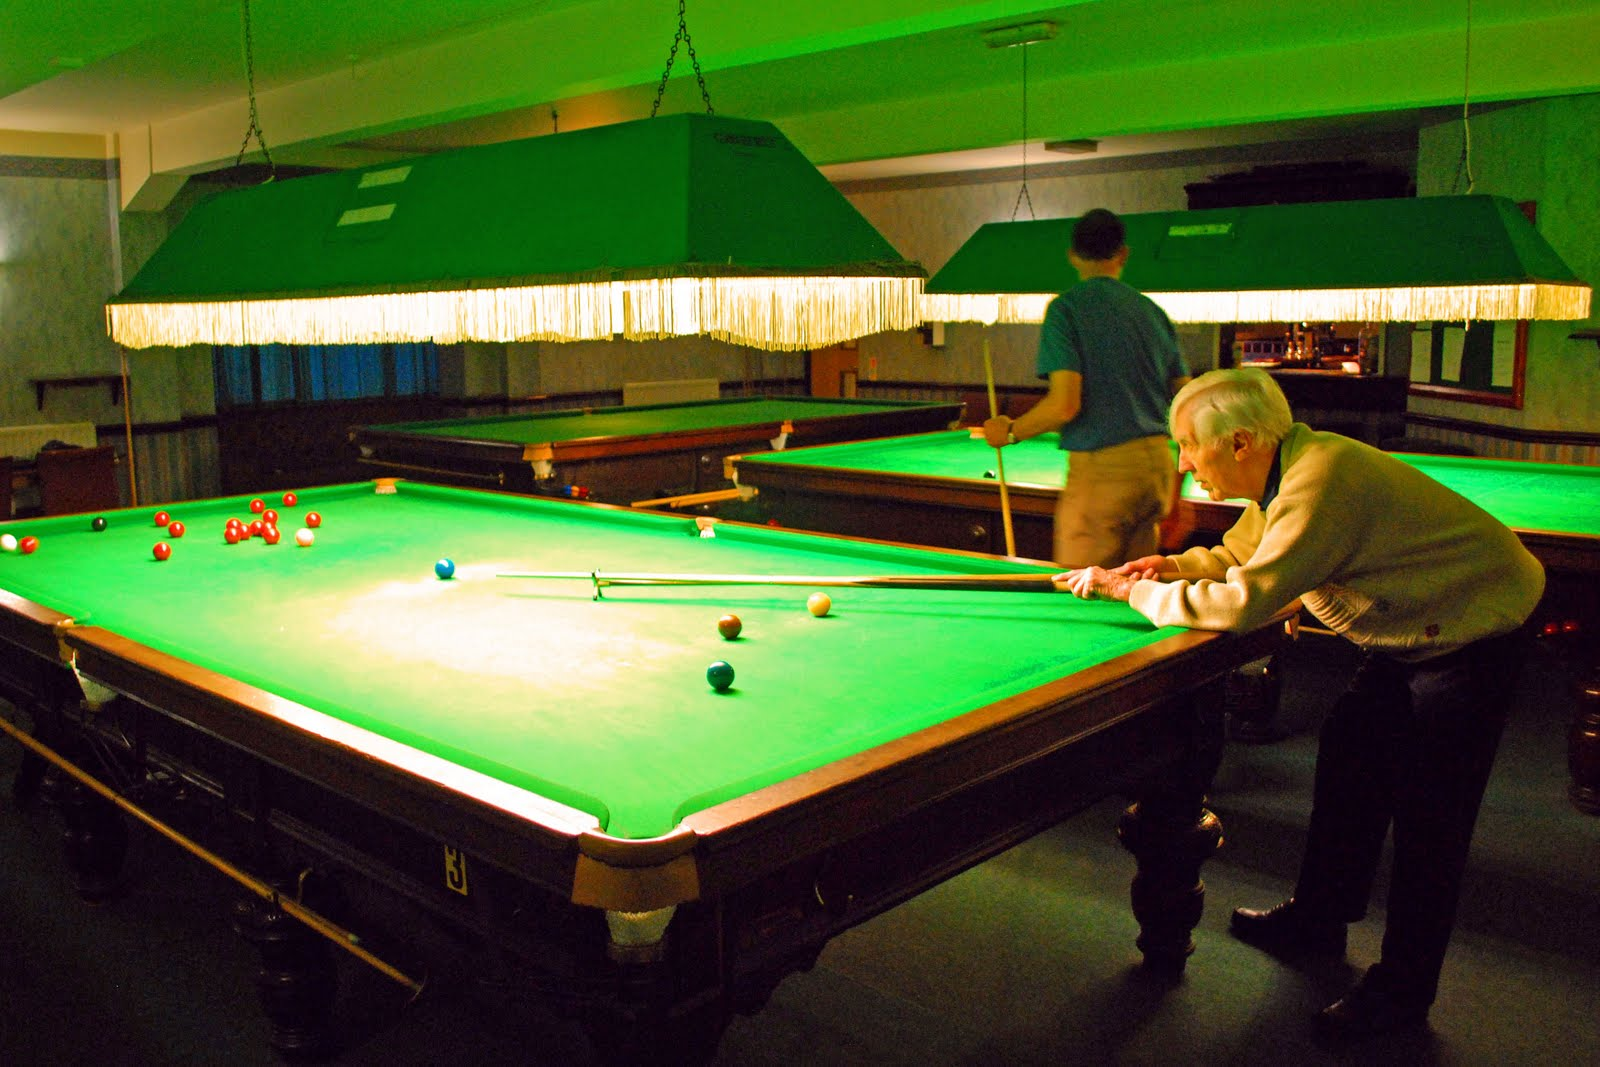 Club snooker Canterbury swimming pool opening hours